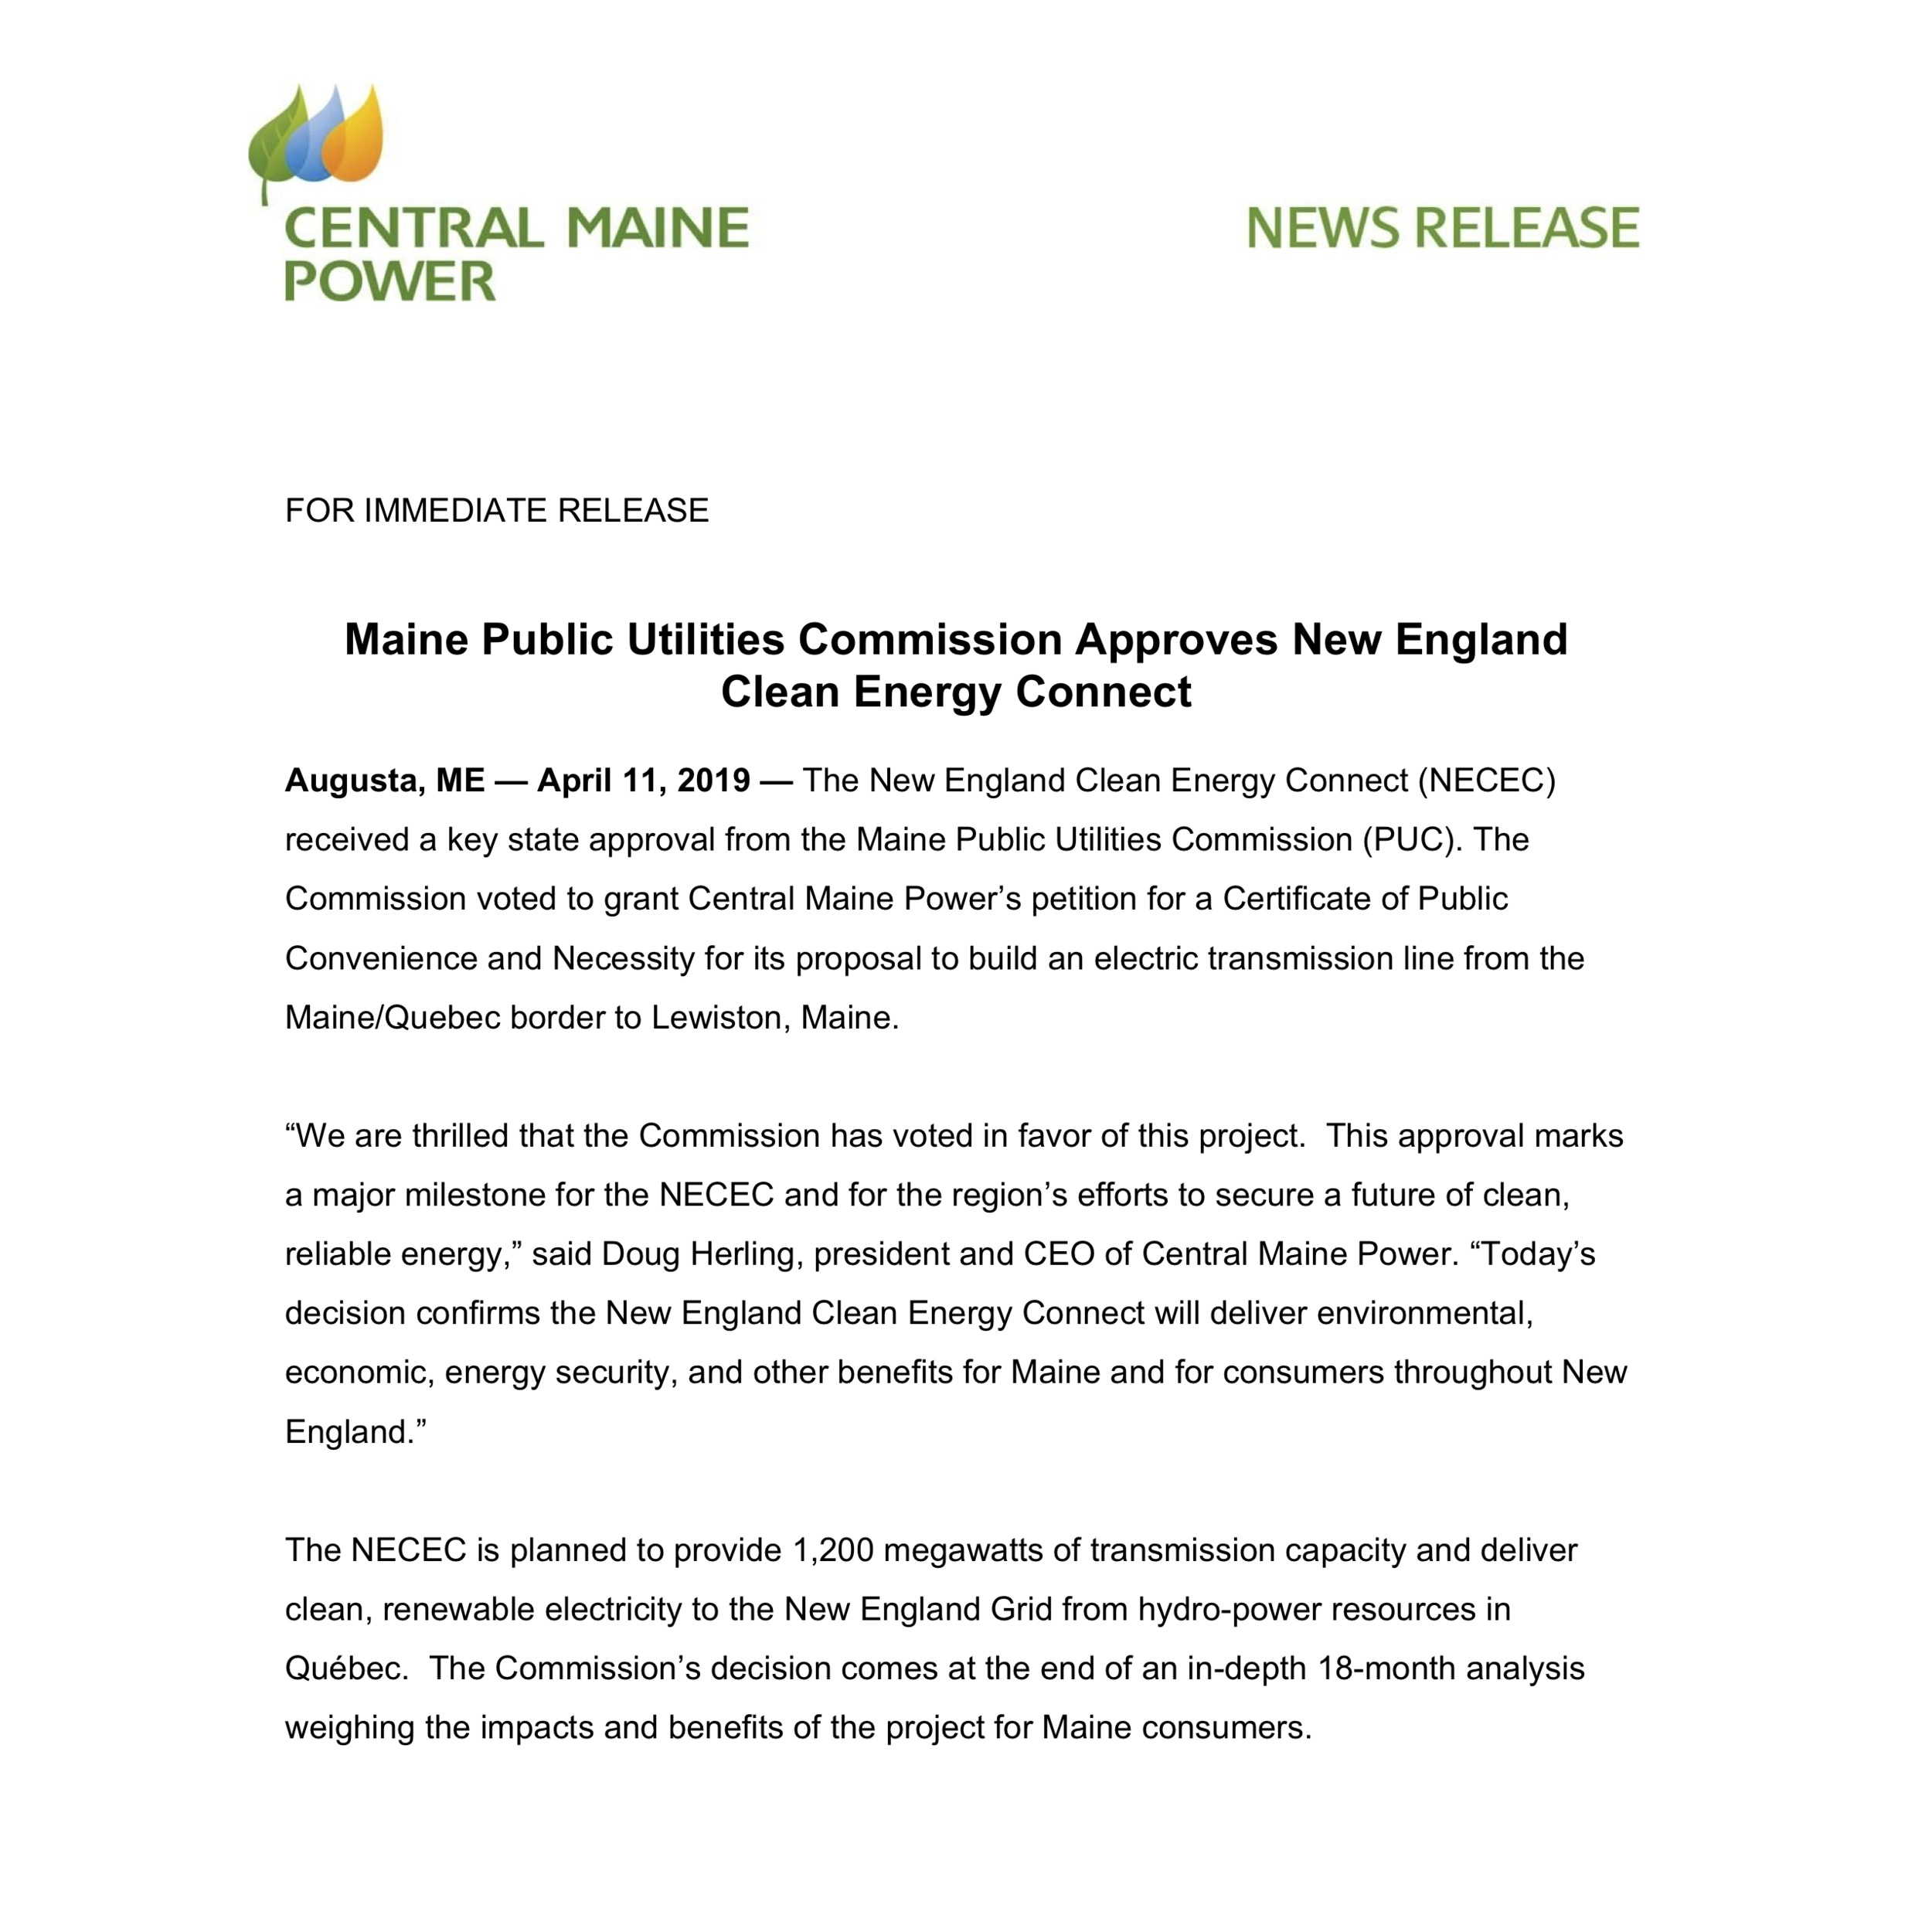 Maine Public Utilities Commission Approves New England Clean Energy